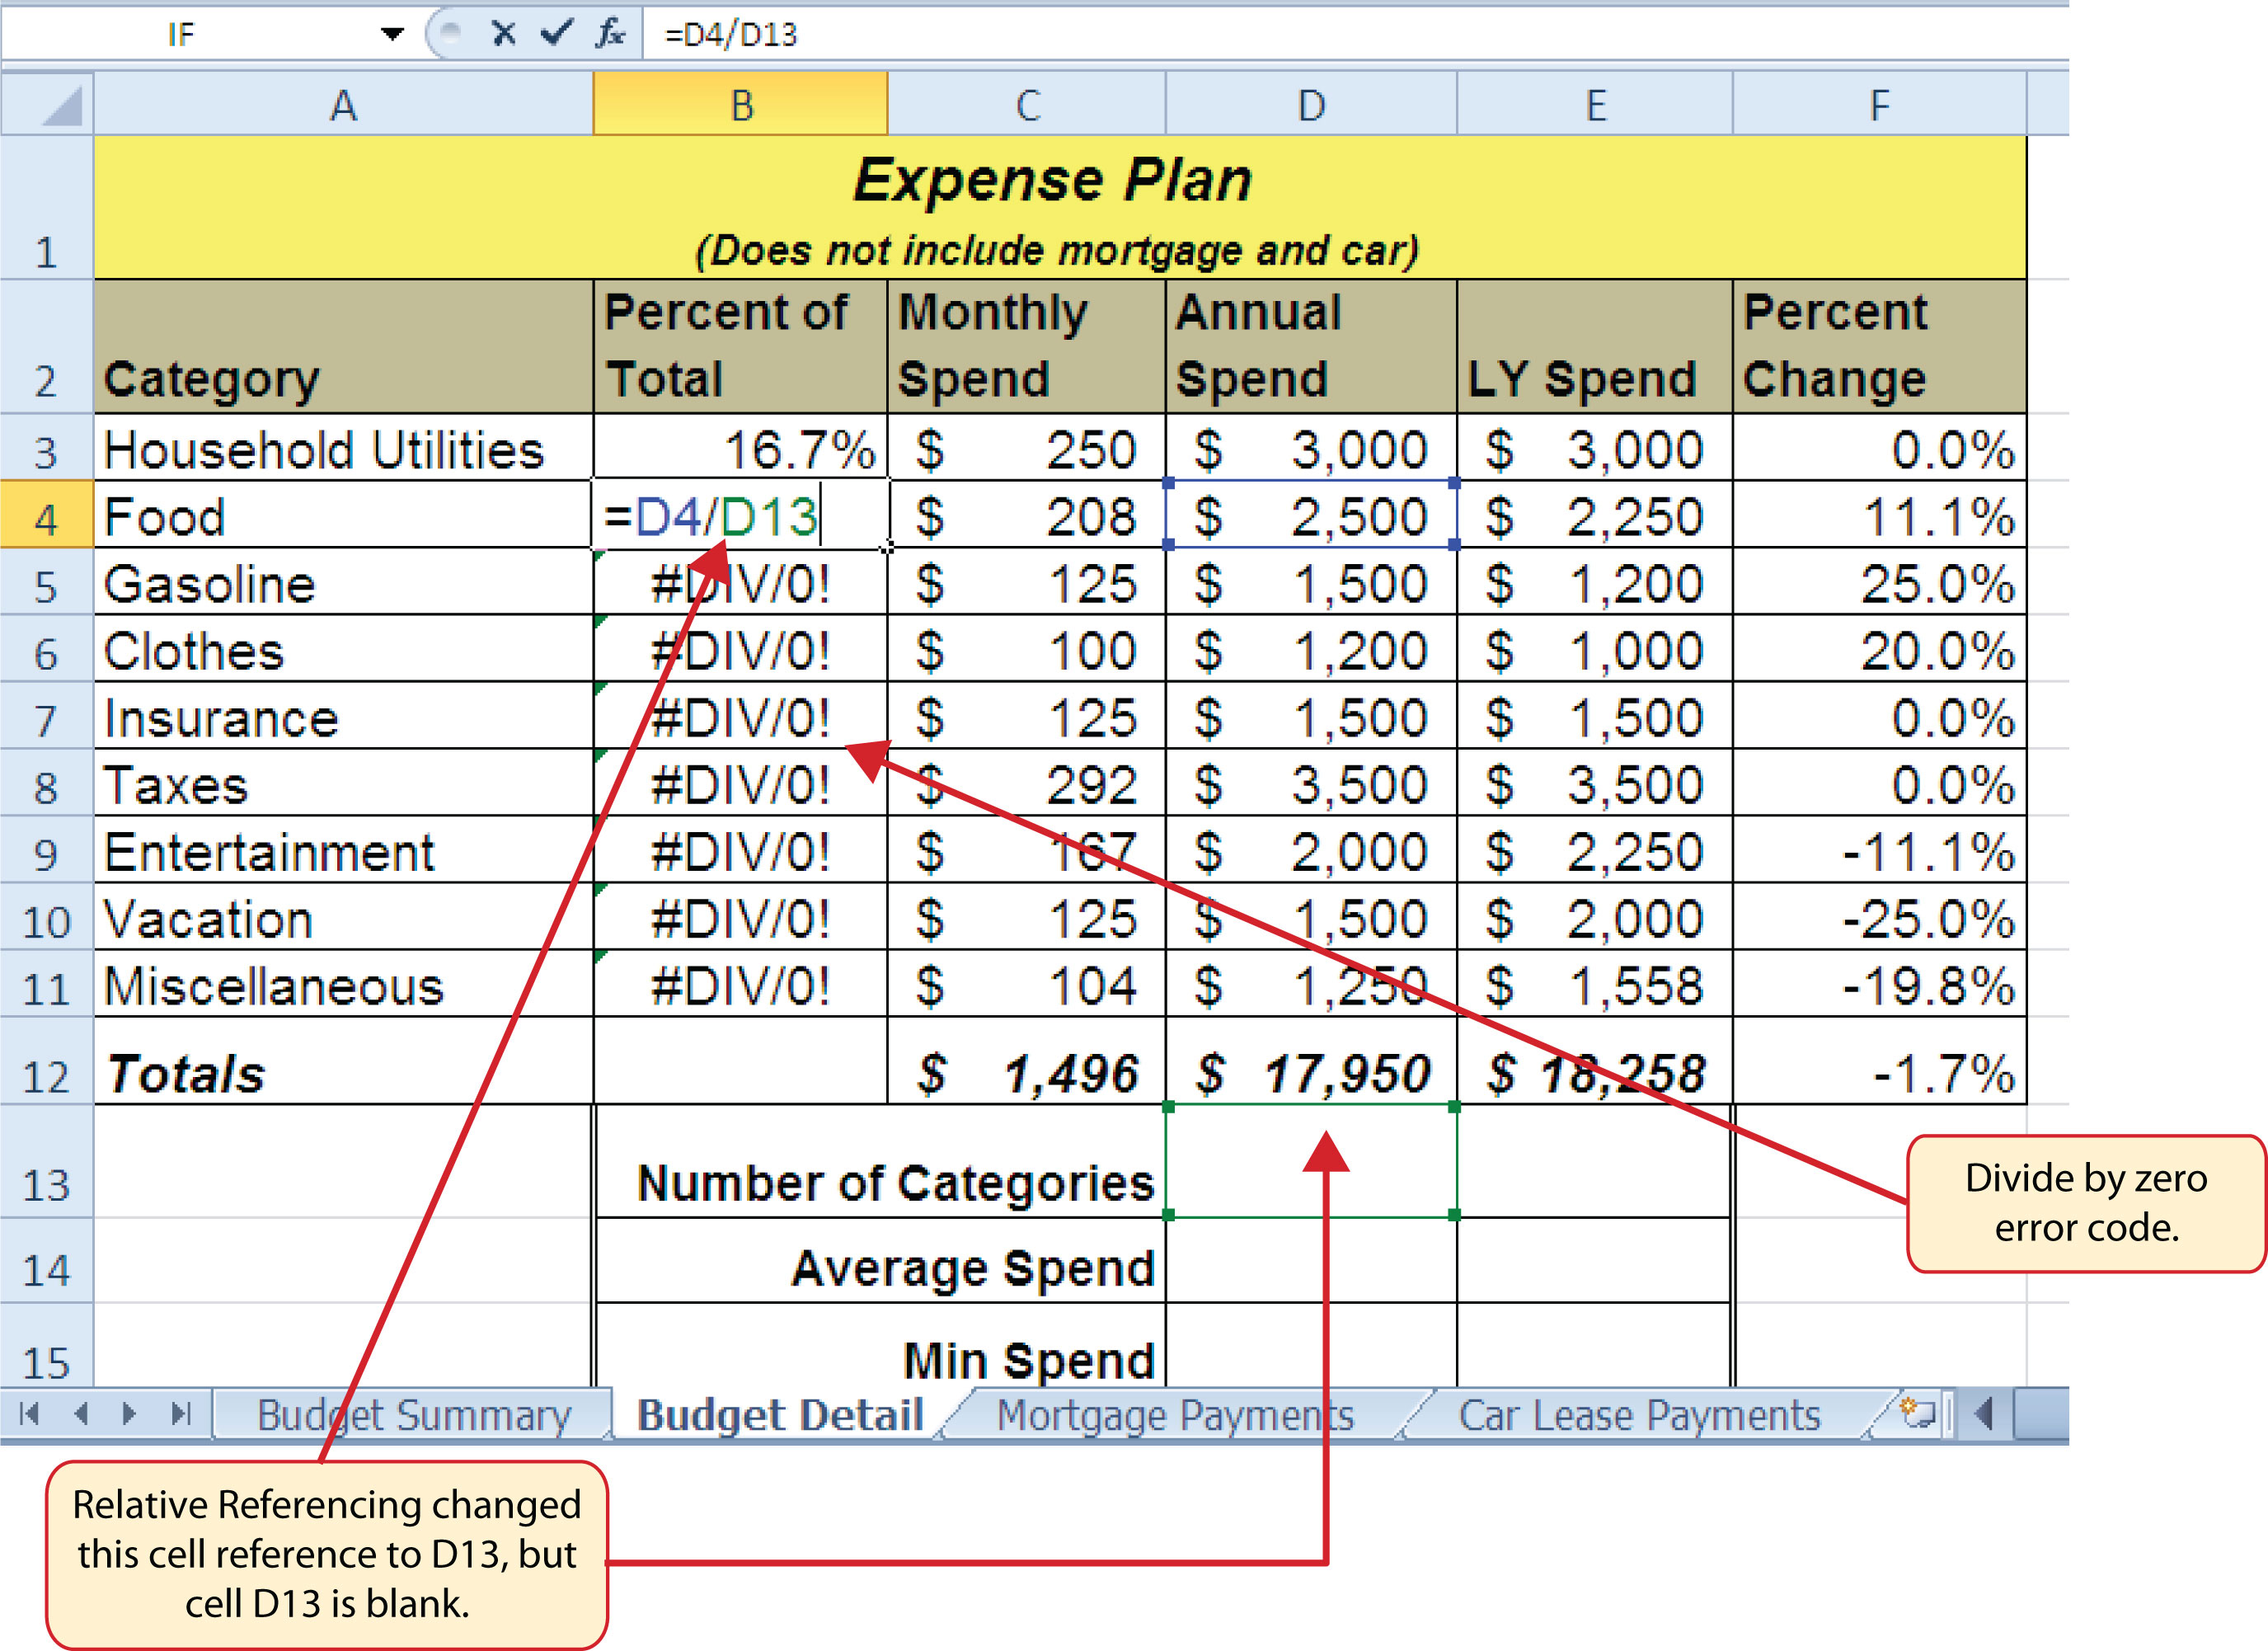 Standard Deviation On Excel €� Serversdb How To Calculate 0 Error From  Relative Referencing